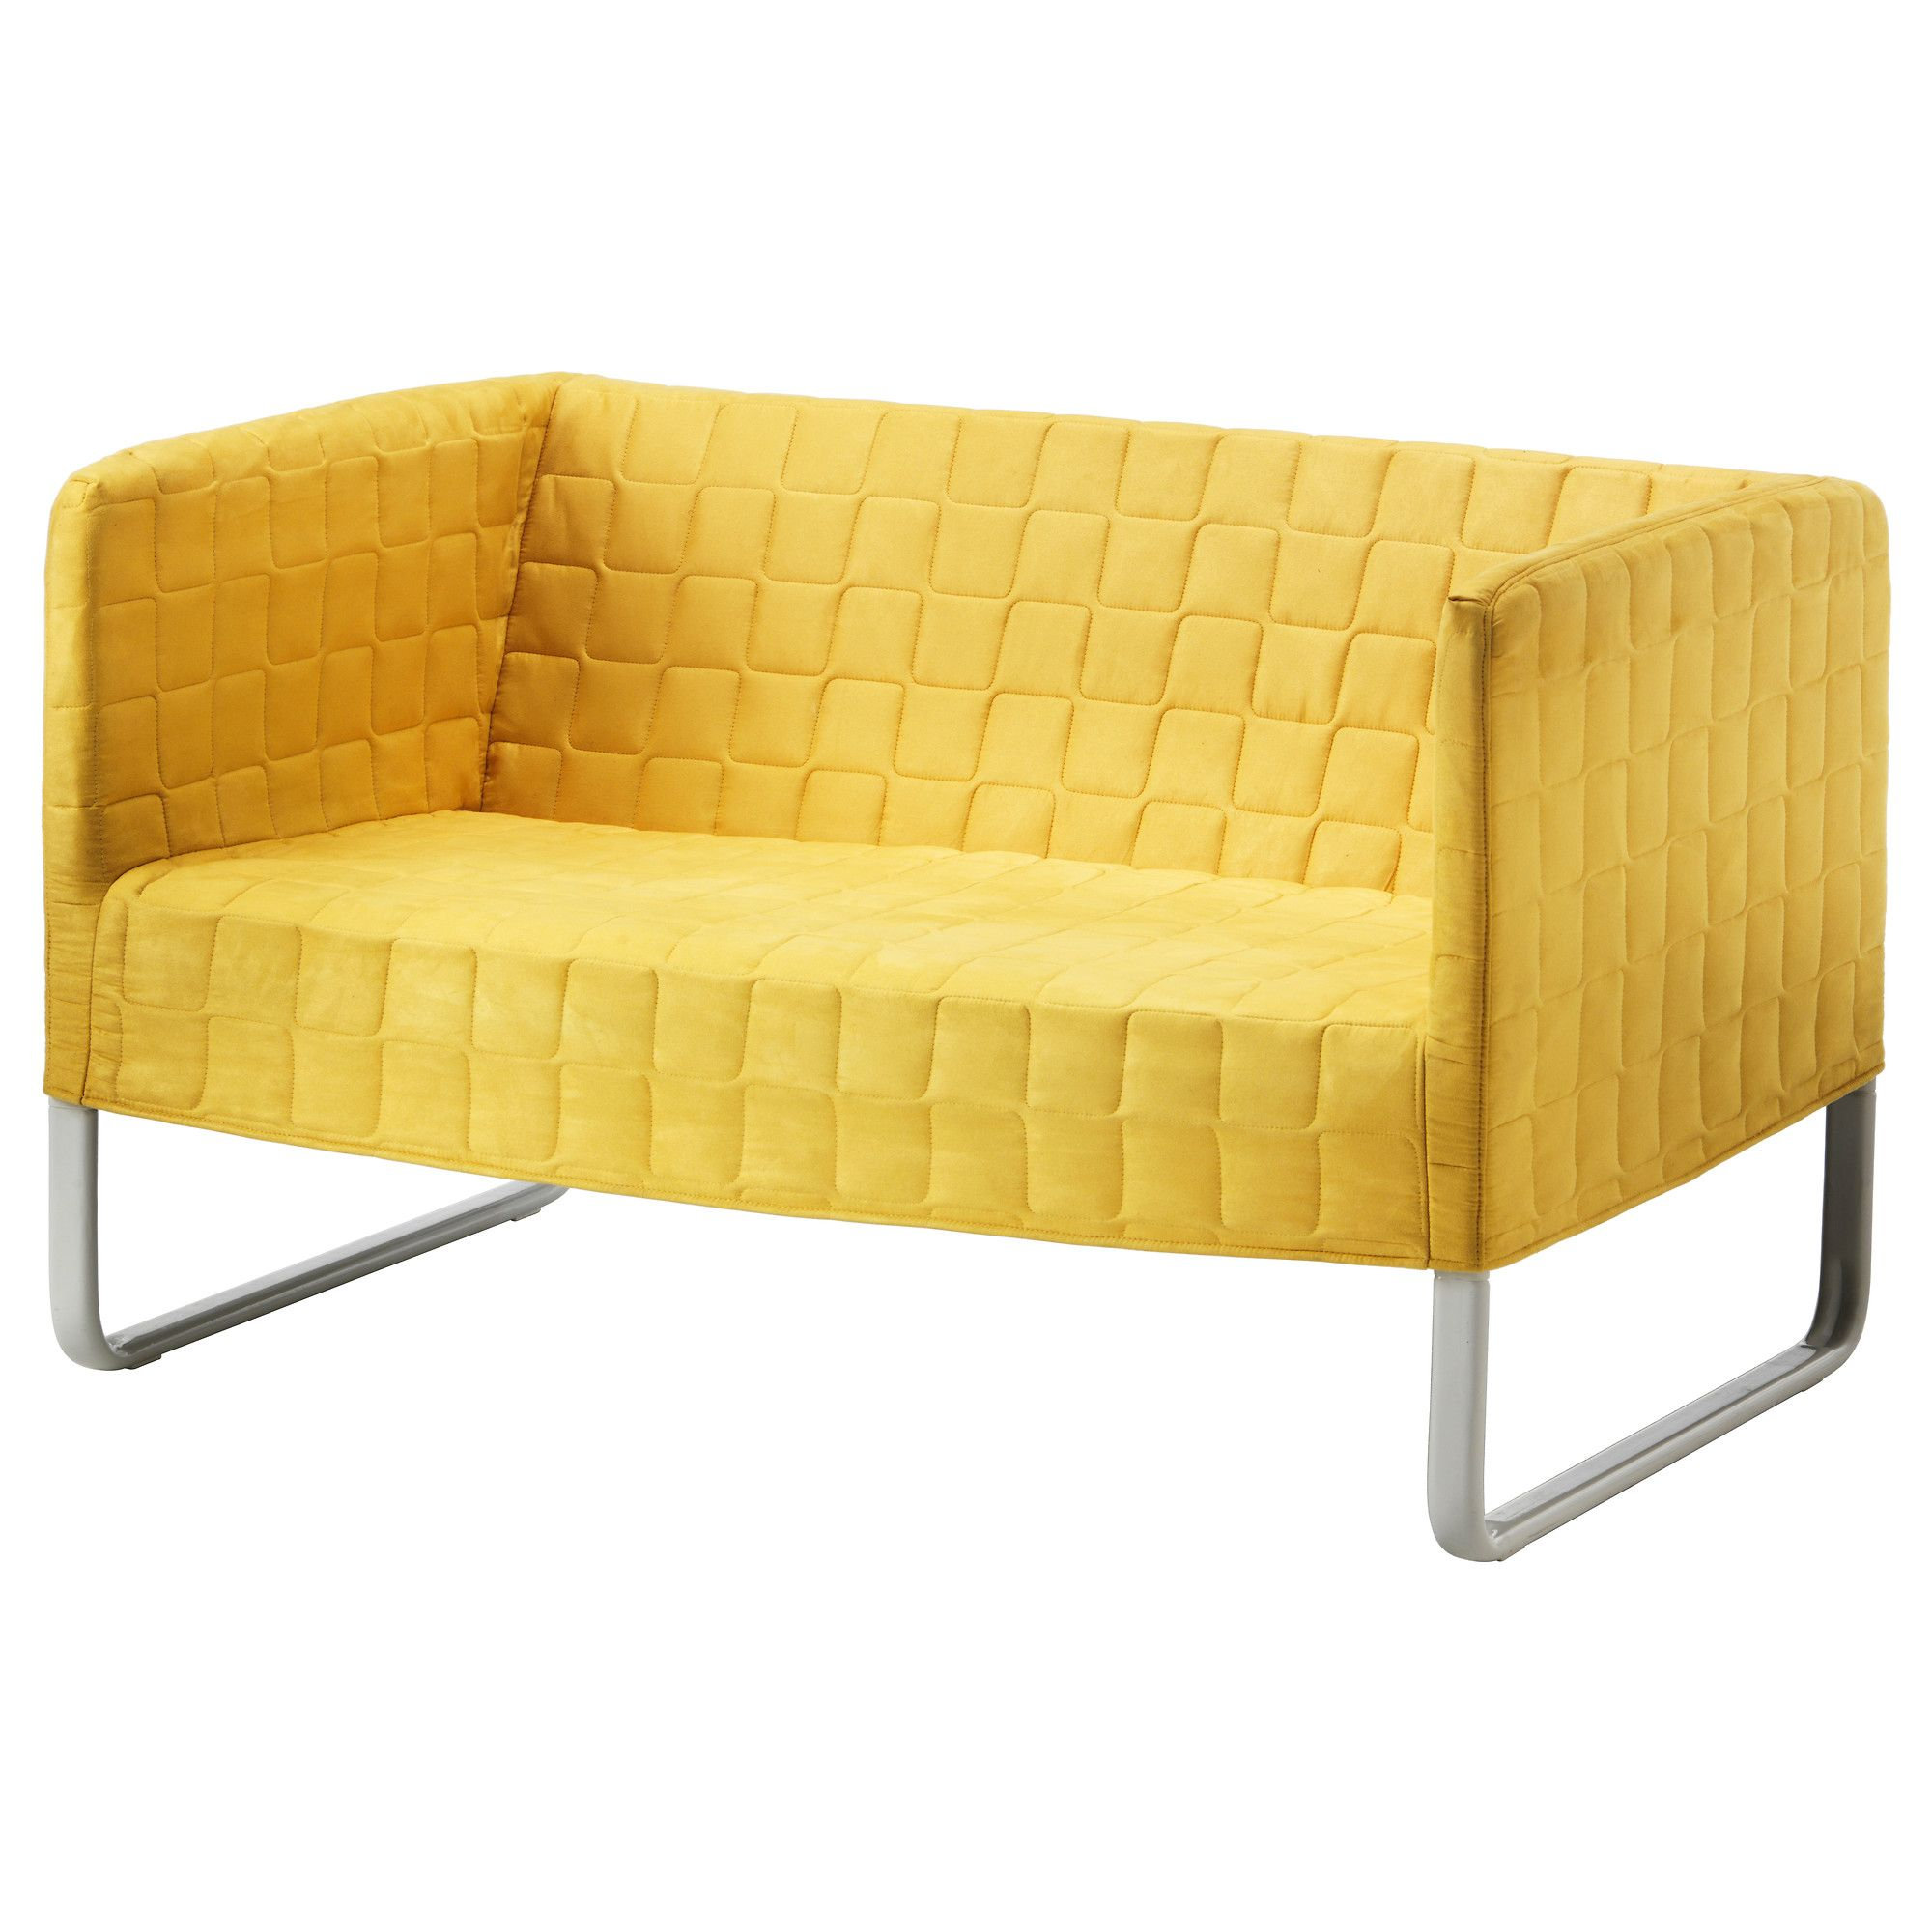 Furniture Home Furnishings Find Your Inspiration Ikea Yellow Sofa Love Seat Ikea Sofa